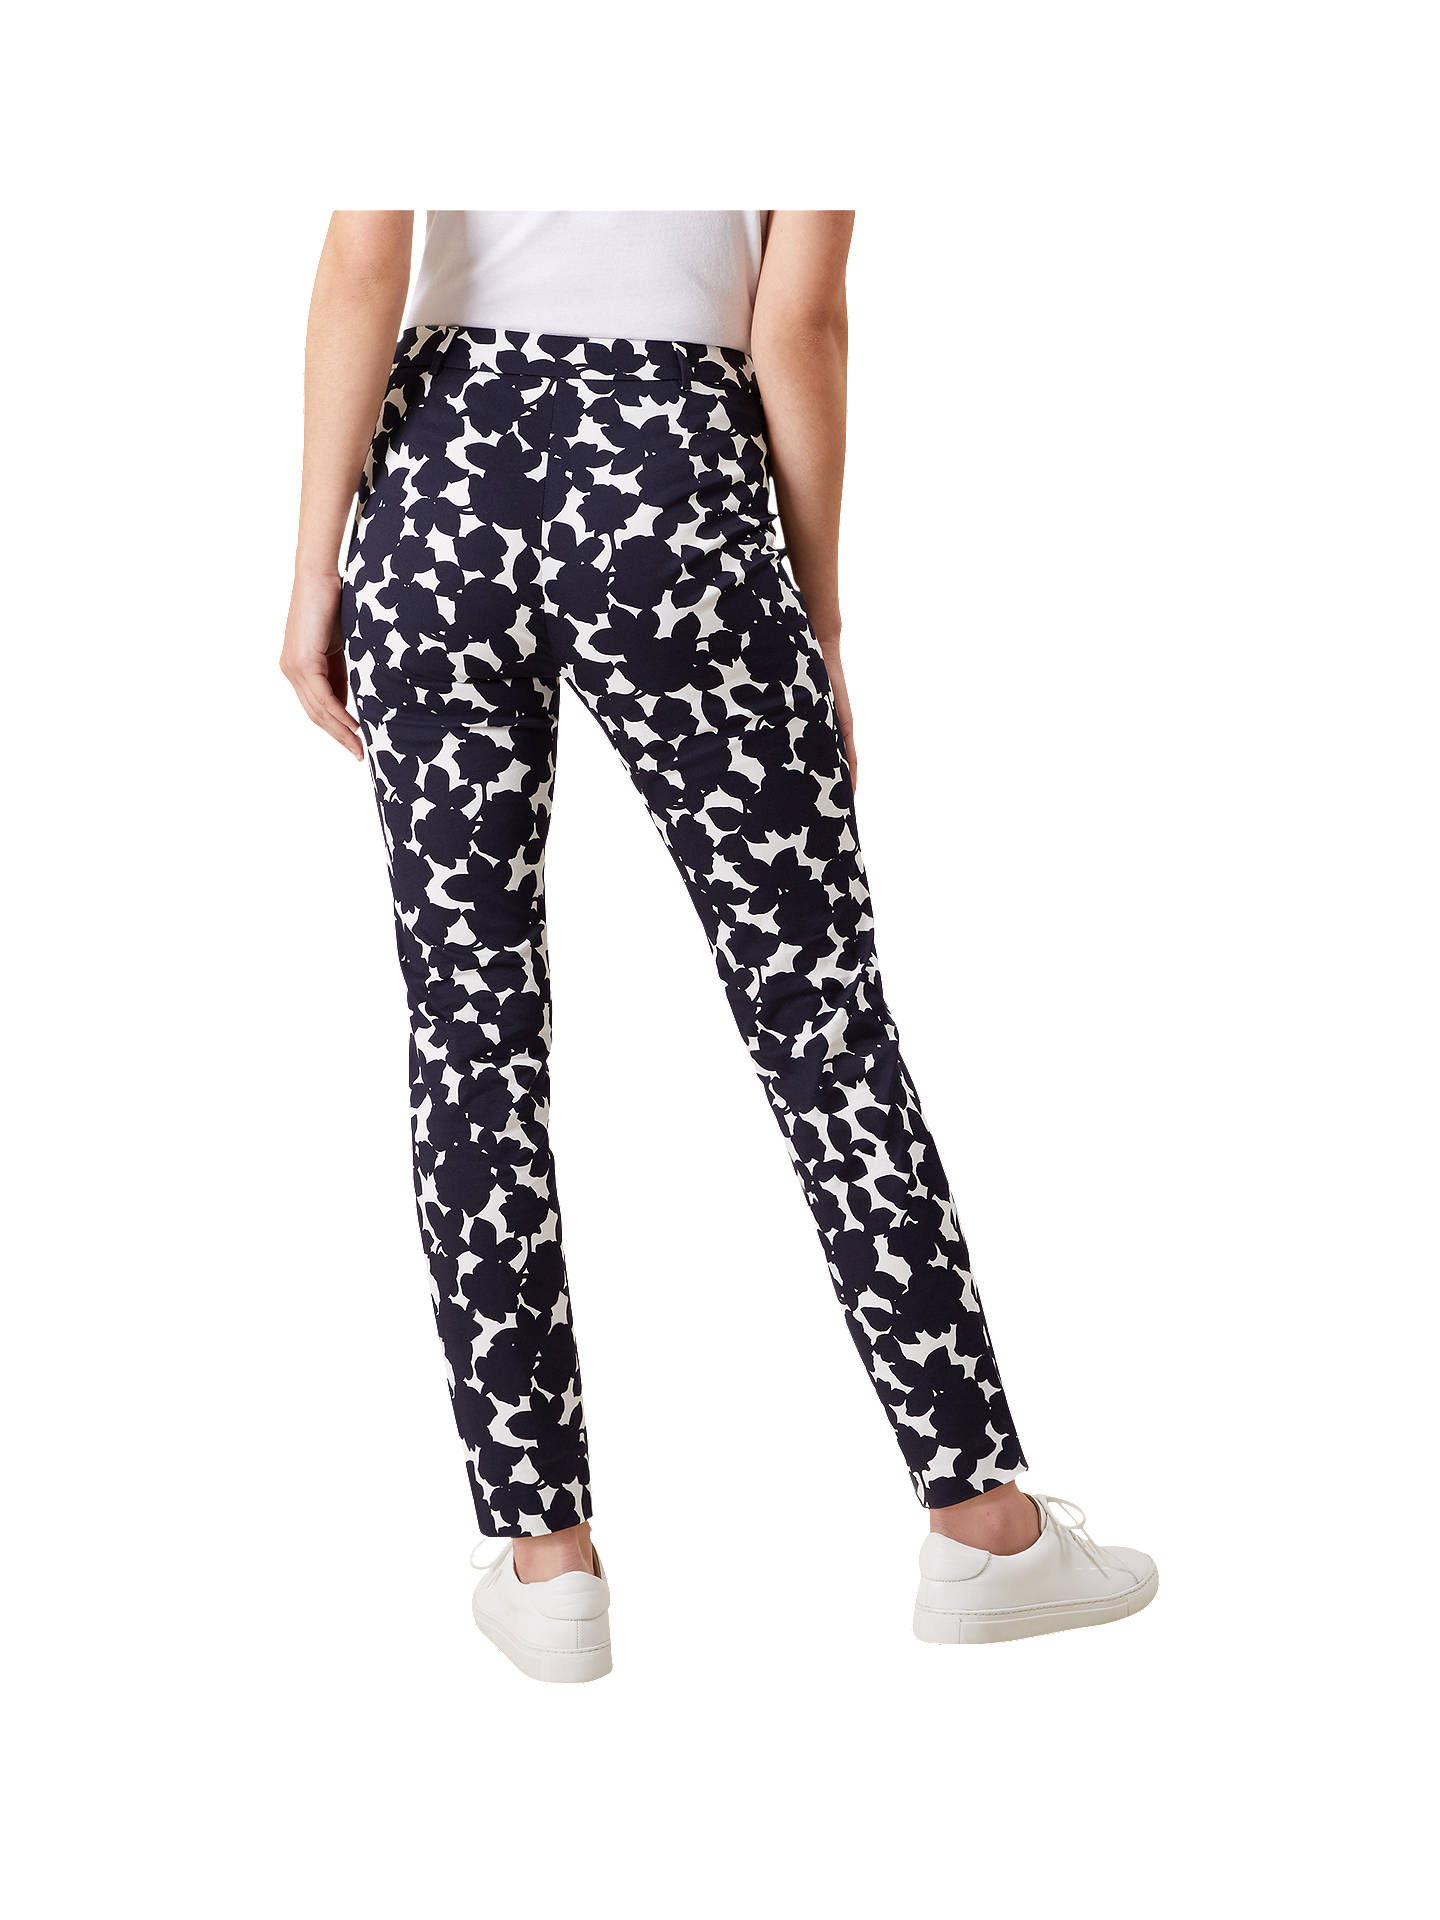 BuyHobbs Mallory Capri Trousers, Navy Ivory, 6 Online at johnlewis.com